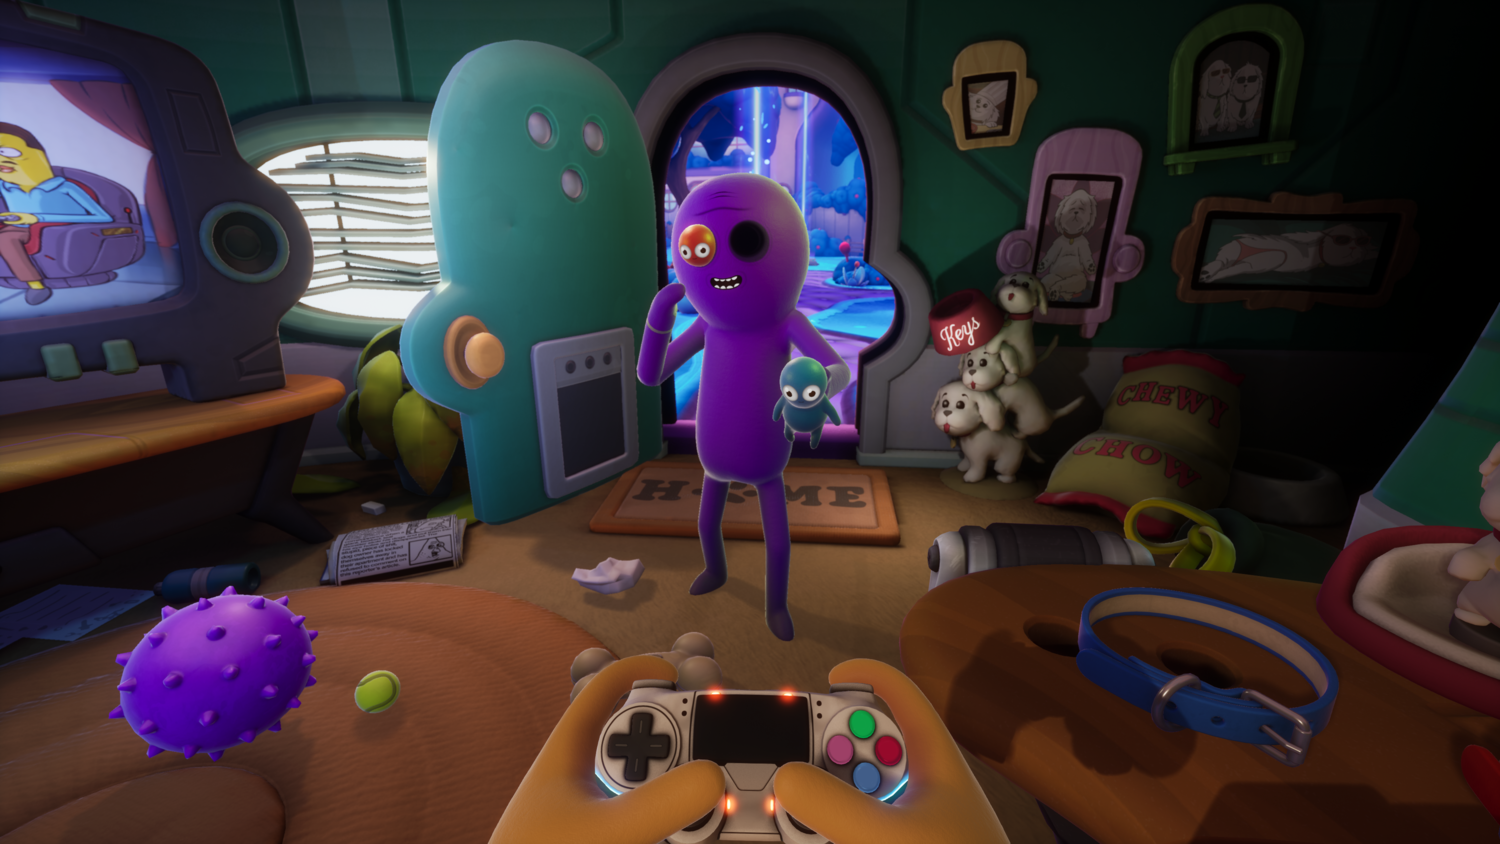 TroverSavestheUniverse PS VR Test 002